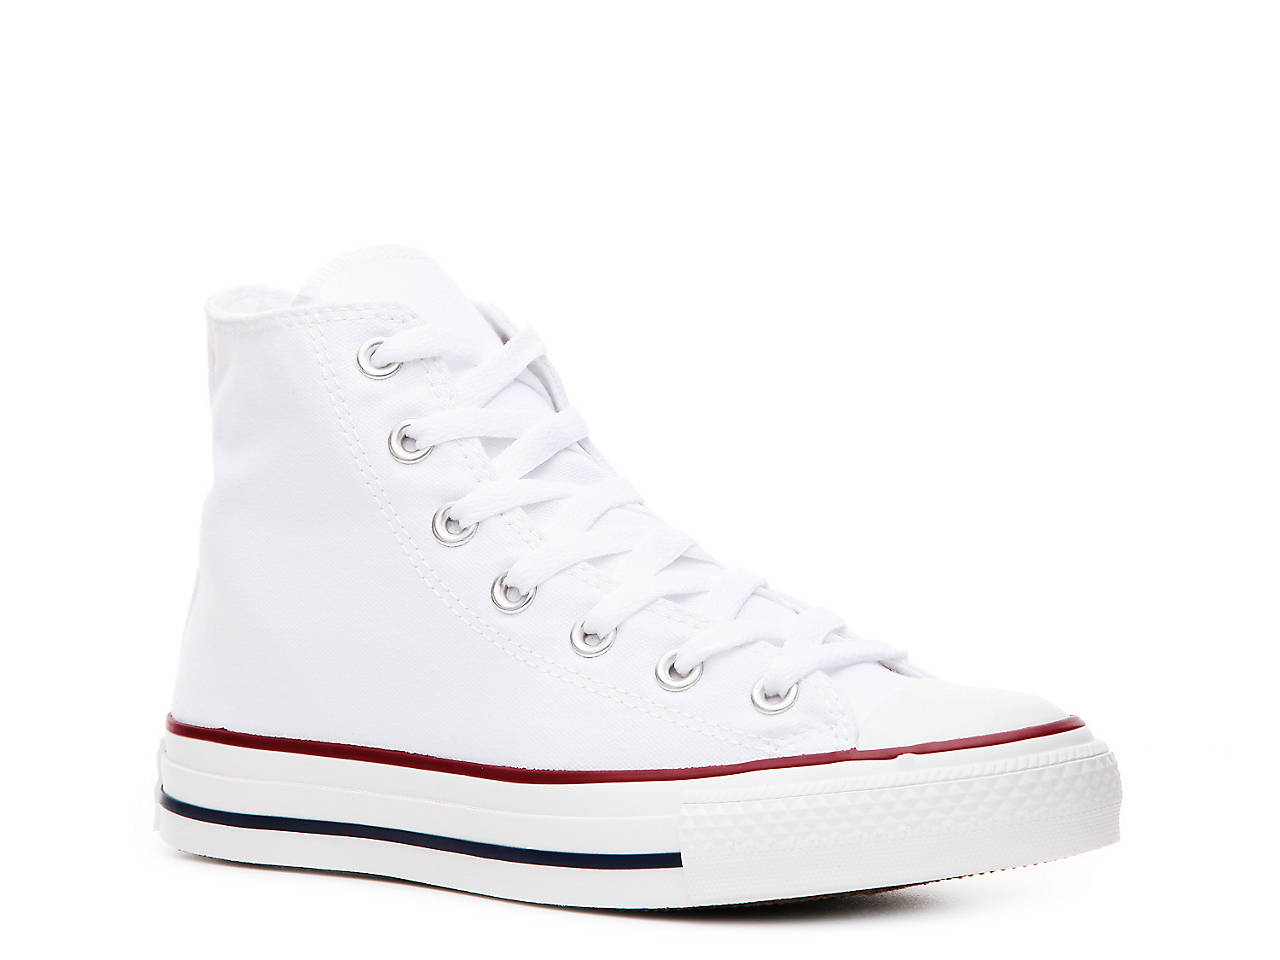 4e8629001463 Converse Chuck Taylor All Star High-Top Sneaker - Women s Women s ...